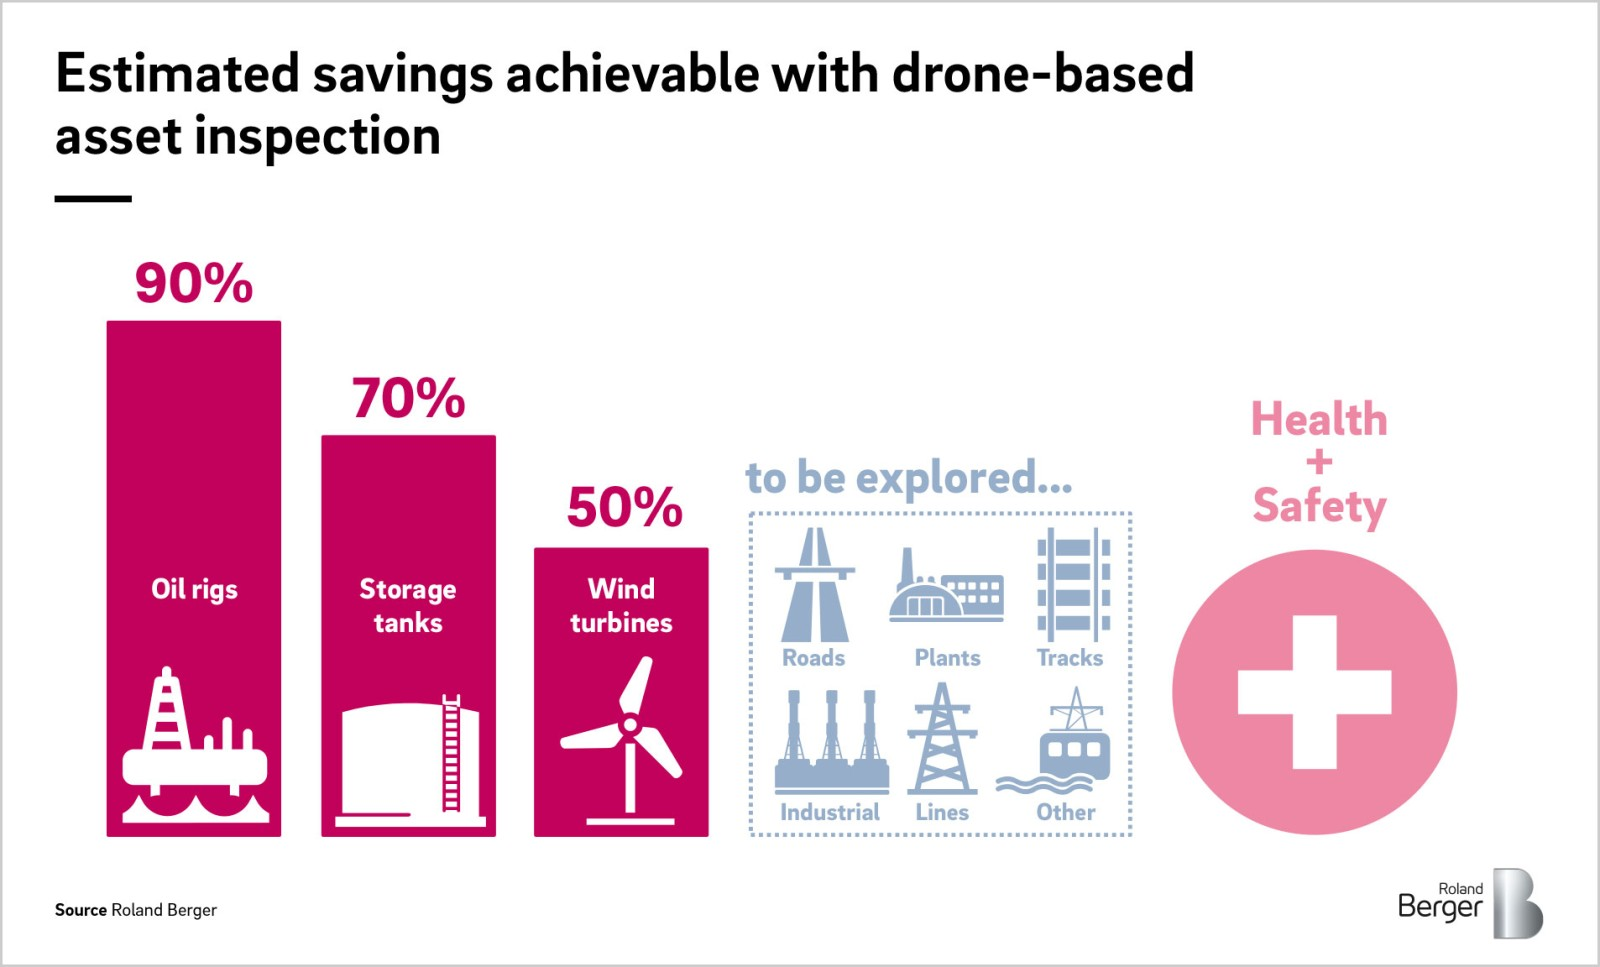 Drones: The future of asset inspection — Roland Berger